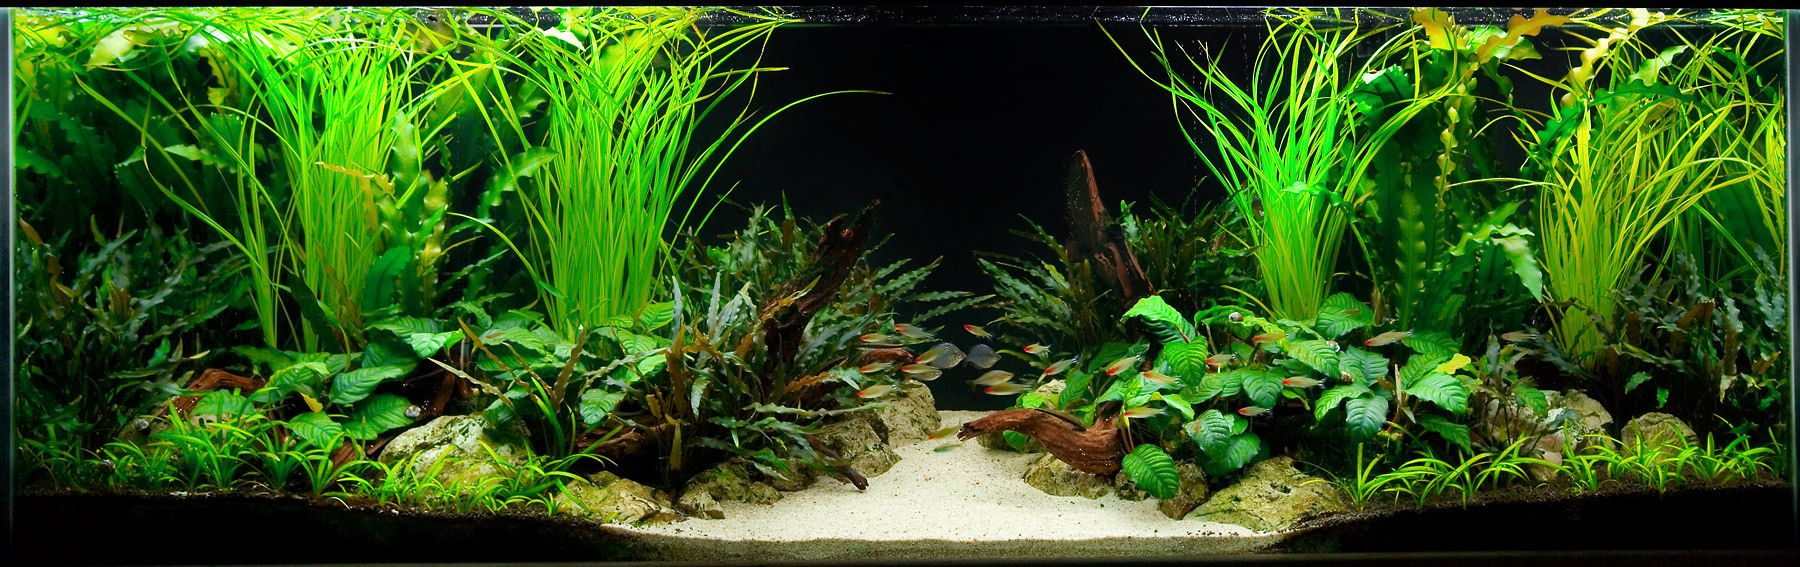 Aquarium design group a two sided live planted aquarium for Planted tank fish